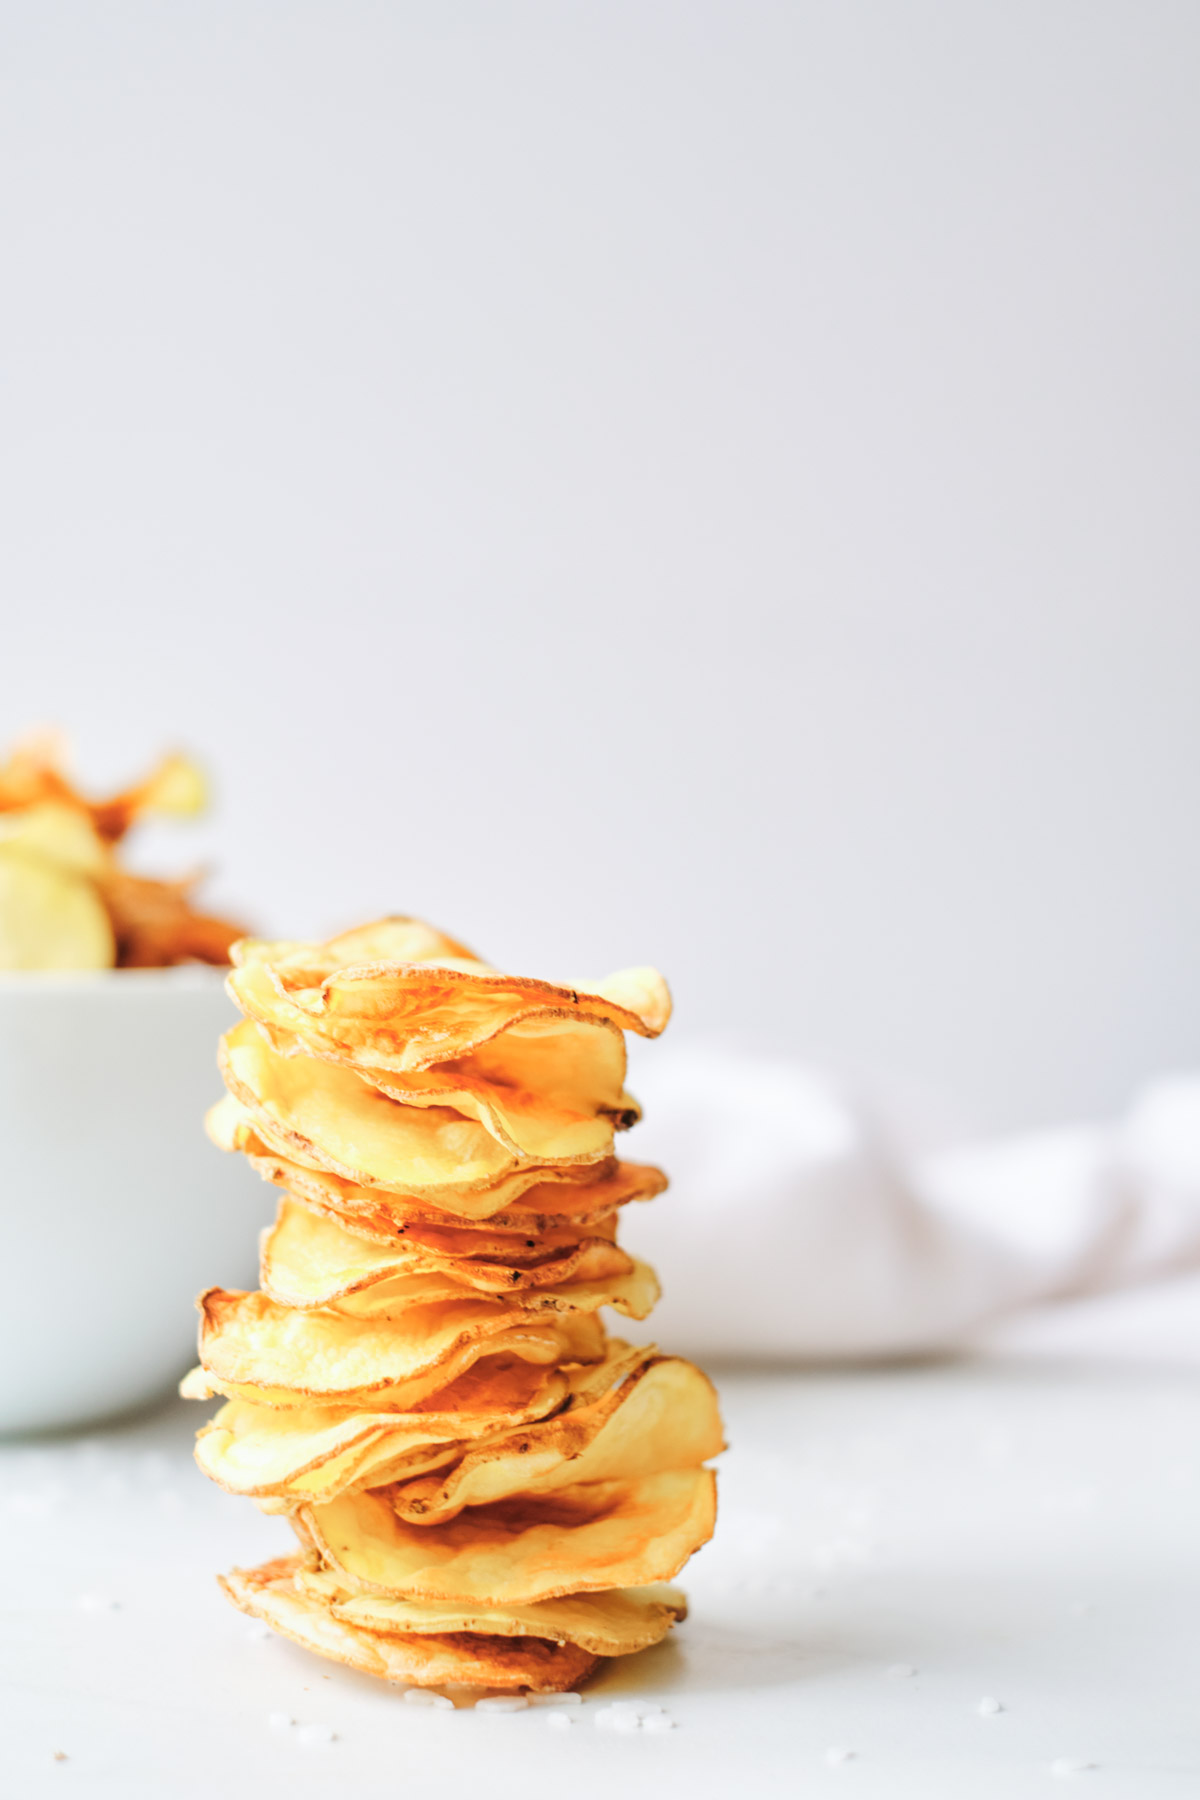 the finished air fryer potato chips stacked and ready to serve